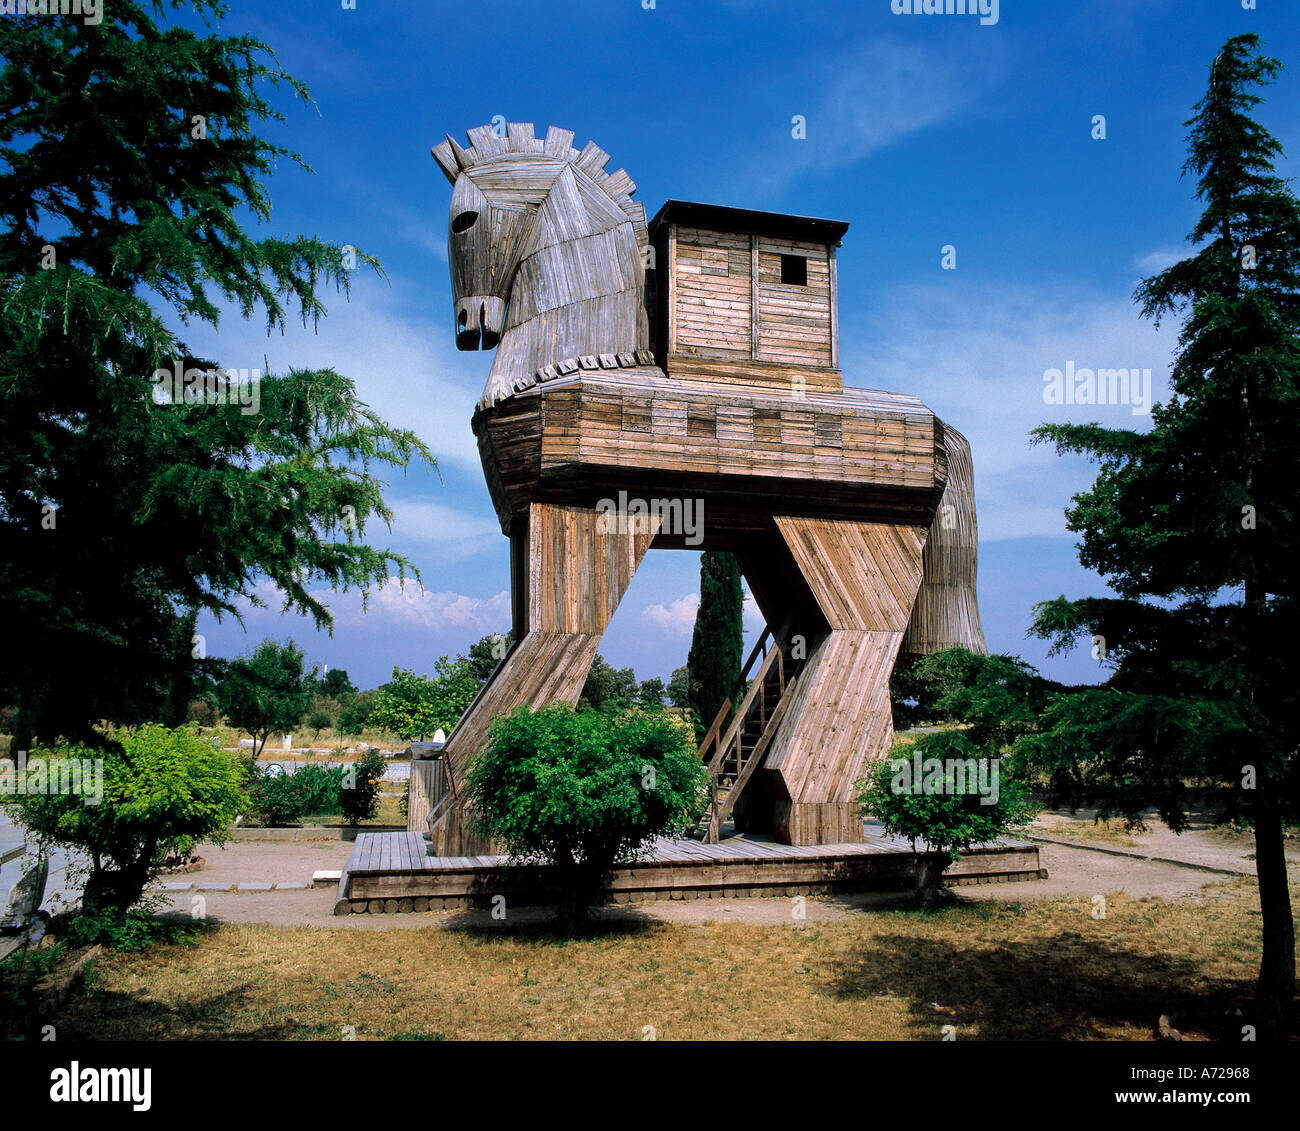 Trojan Horse from ancient mythology in Troy Turkey - Stock Image